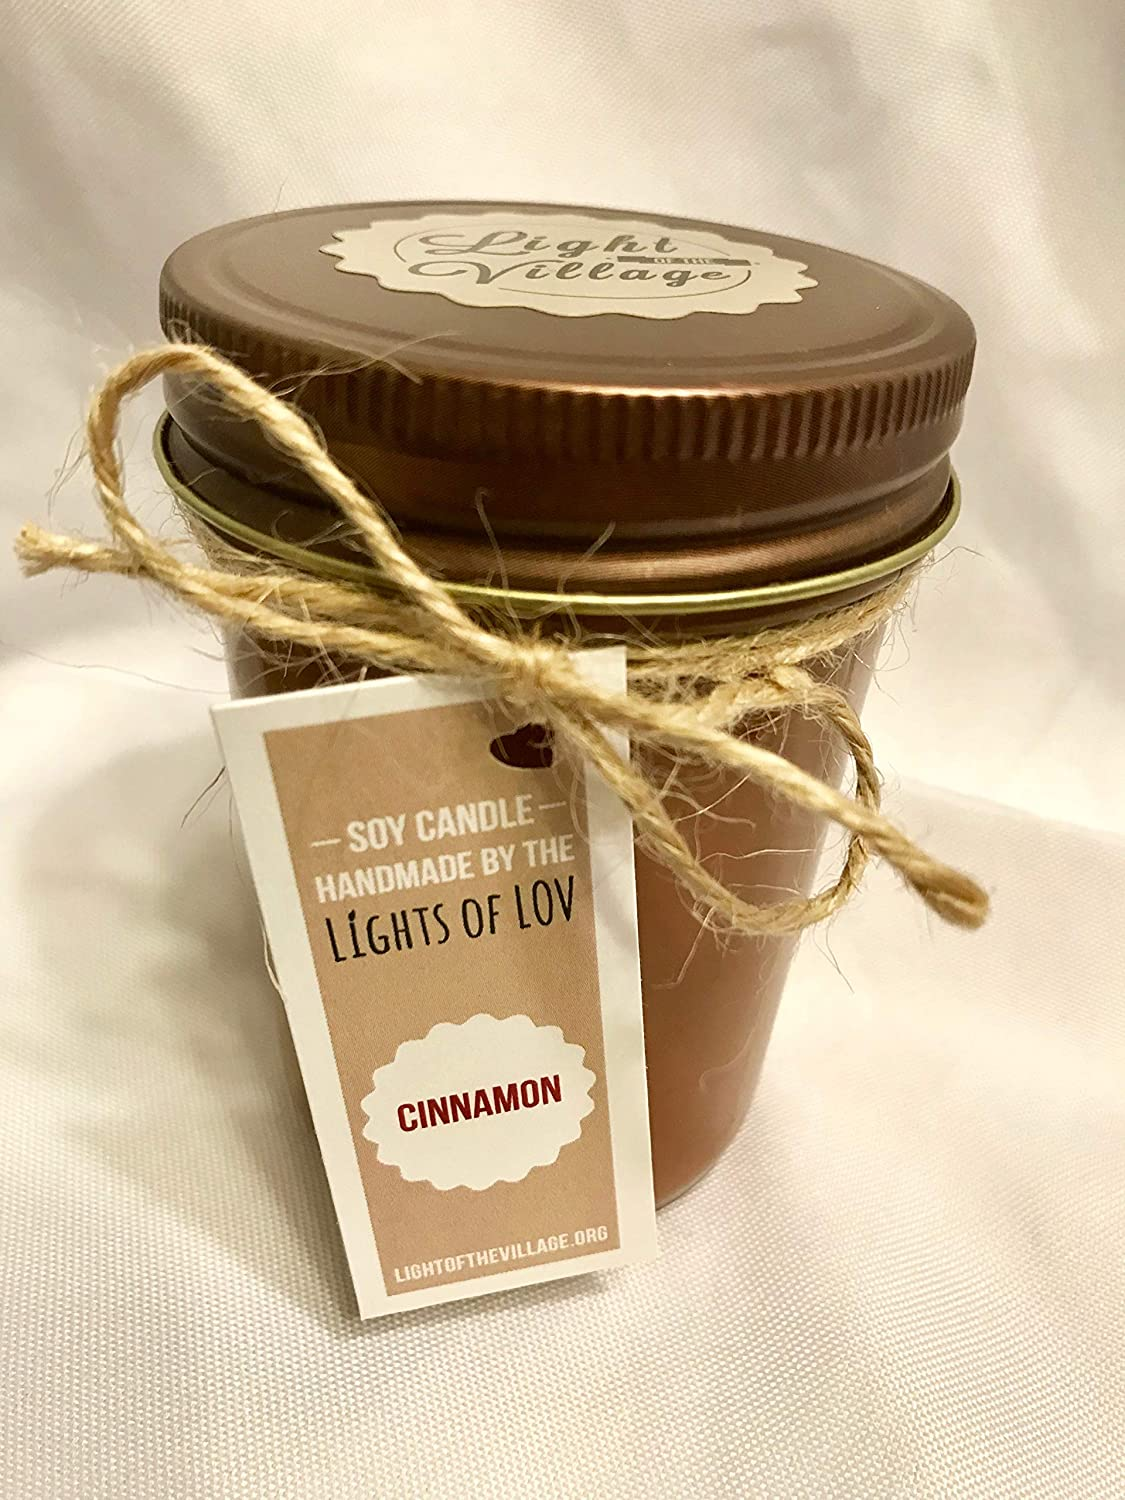 Lights of LOV Soy Candles Uncolored - White White Tea /& Berries Light of the Village